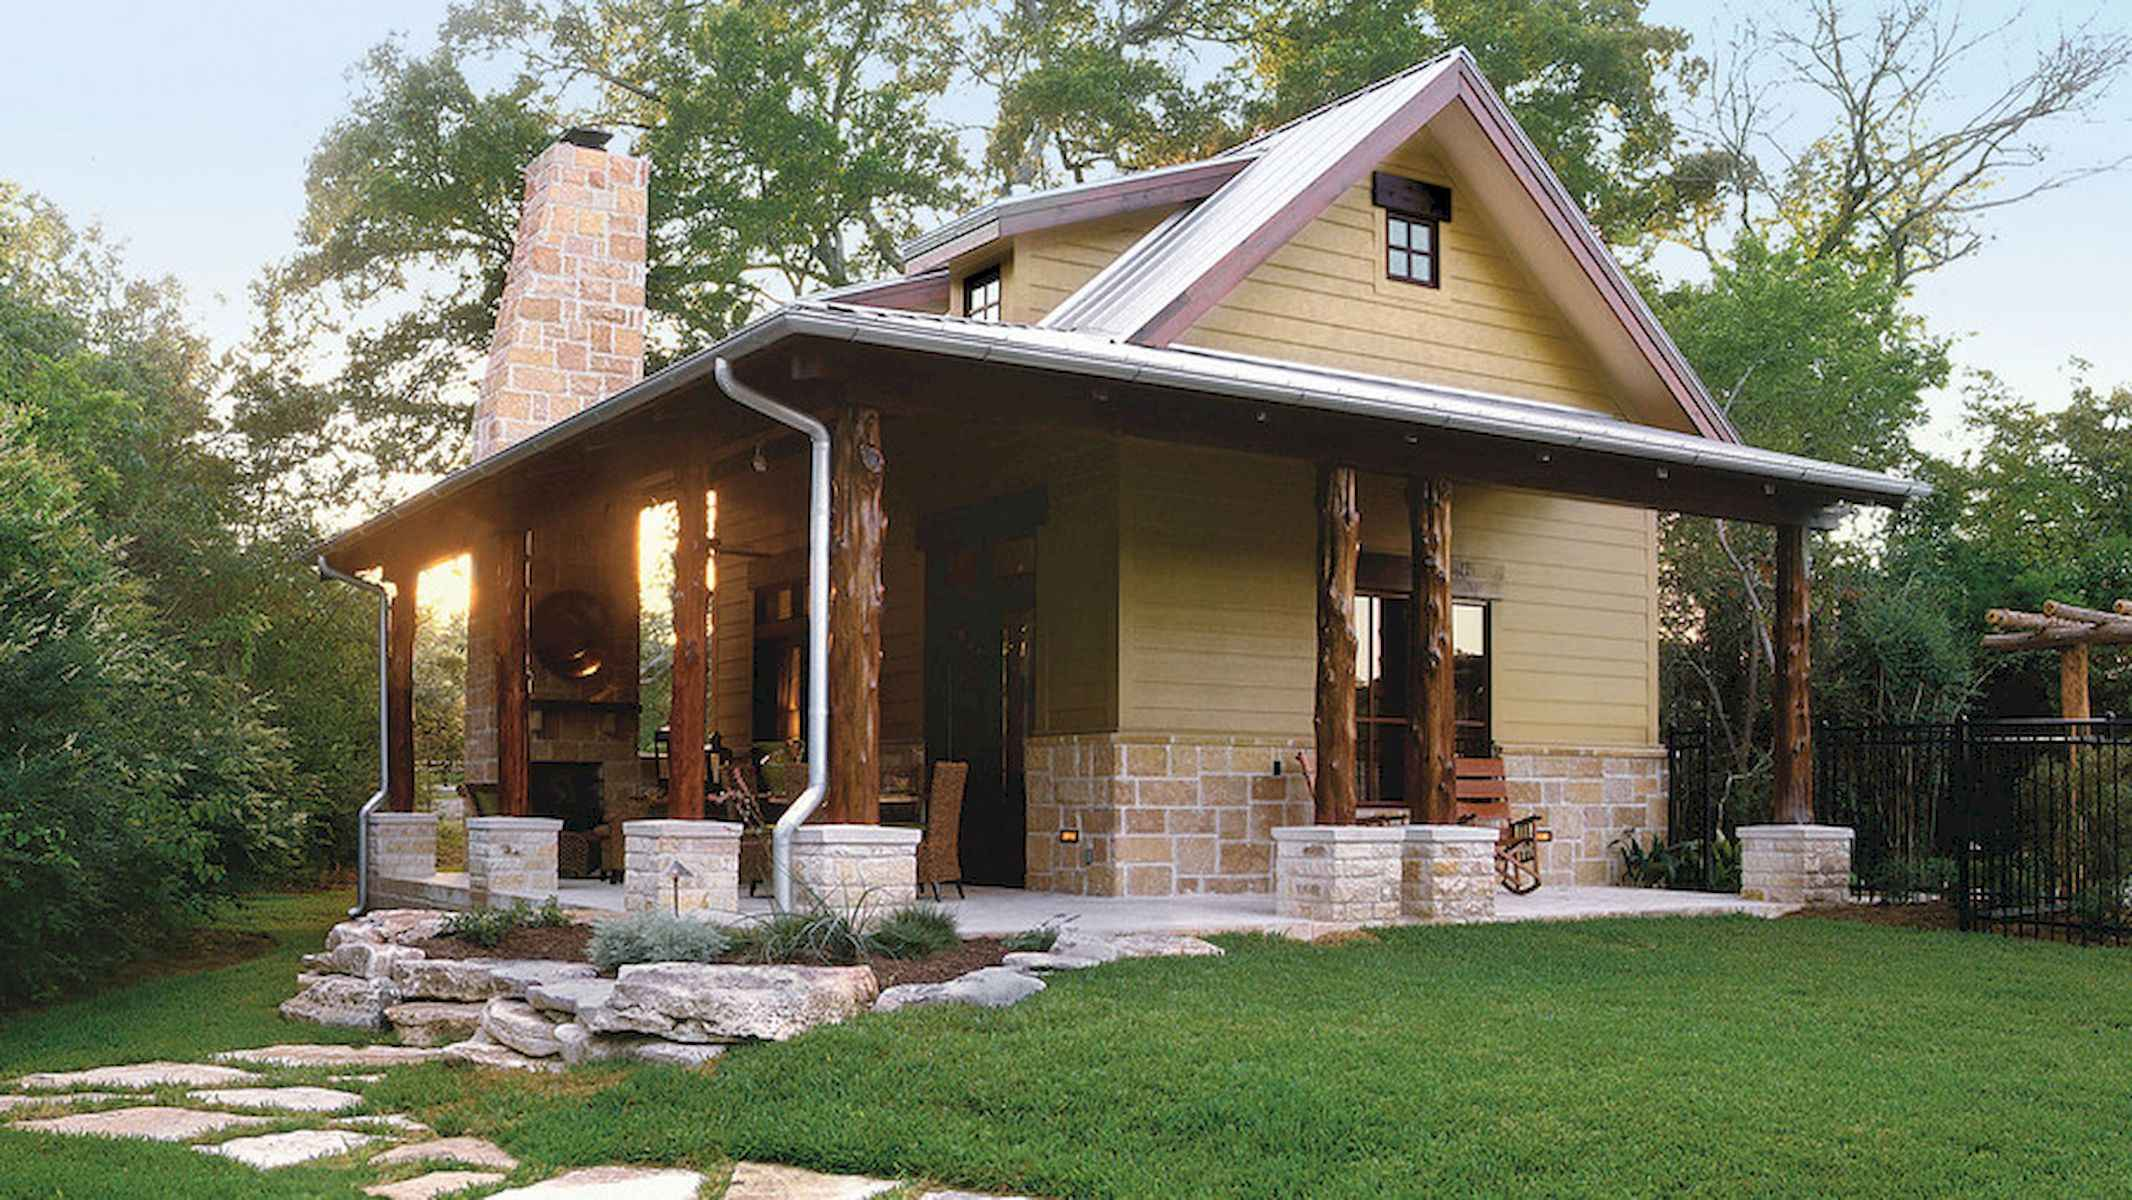 60 Rustic Log Cabin Homes Plans Design Ideas And Remodel (20)